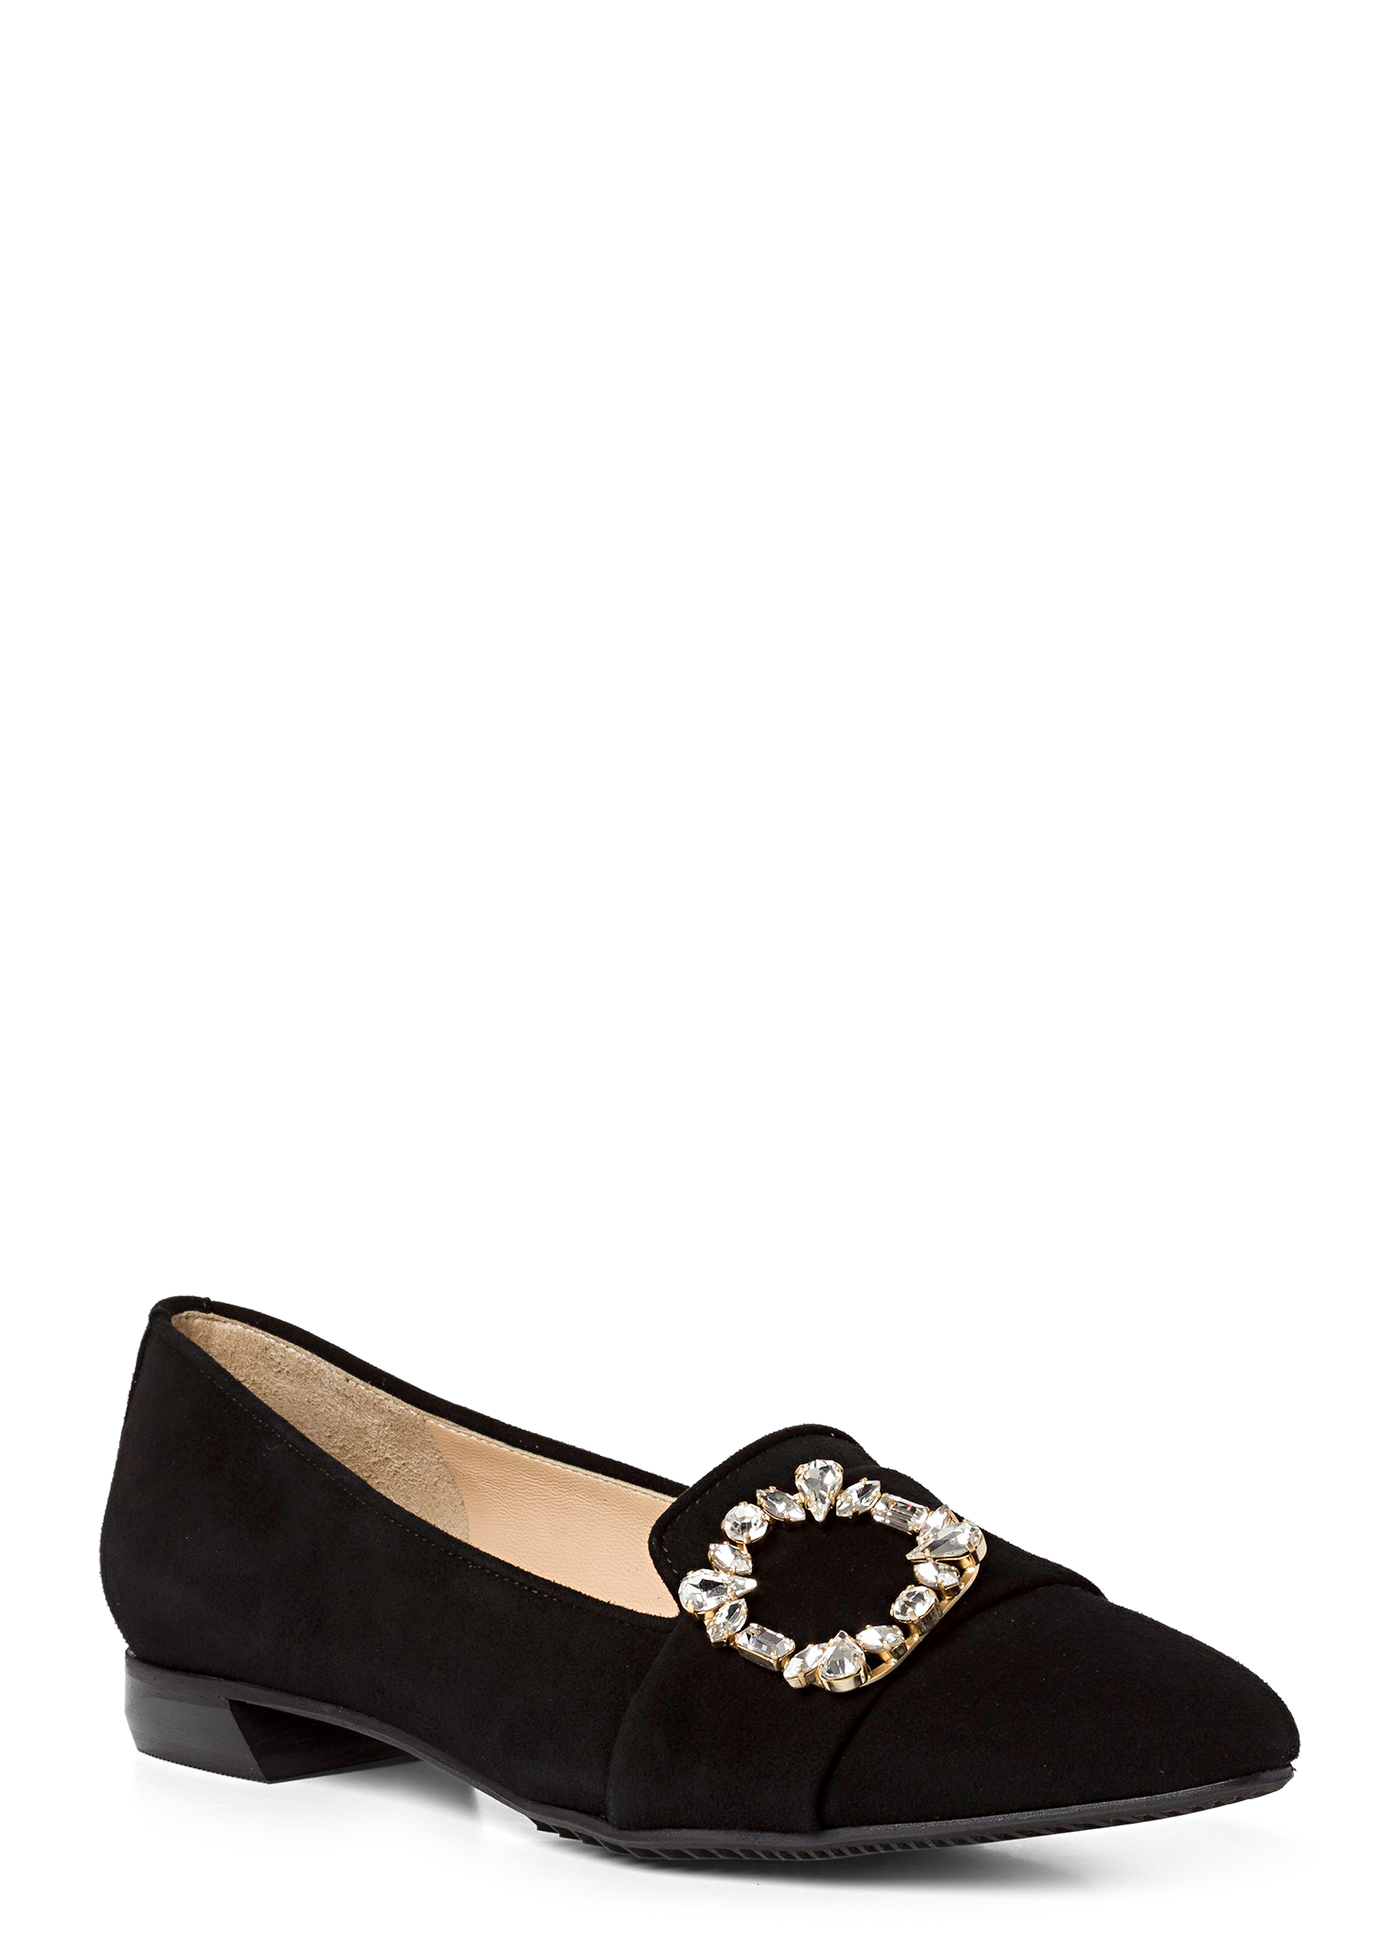 LOAFER WITH METALLIC DETAIL image number 1